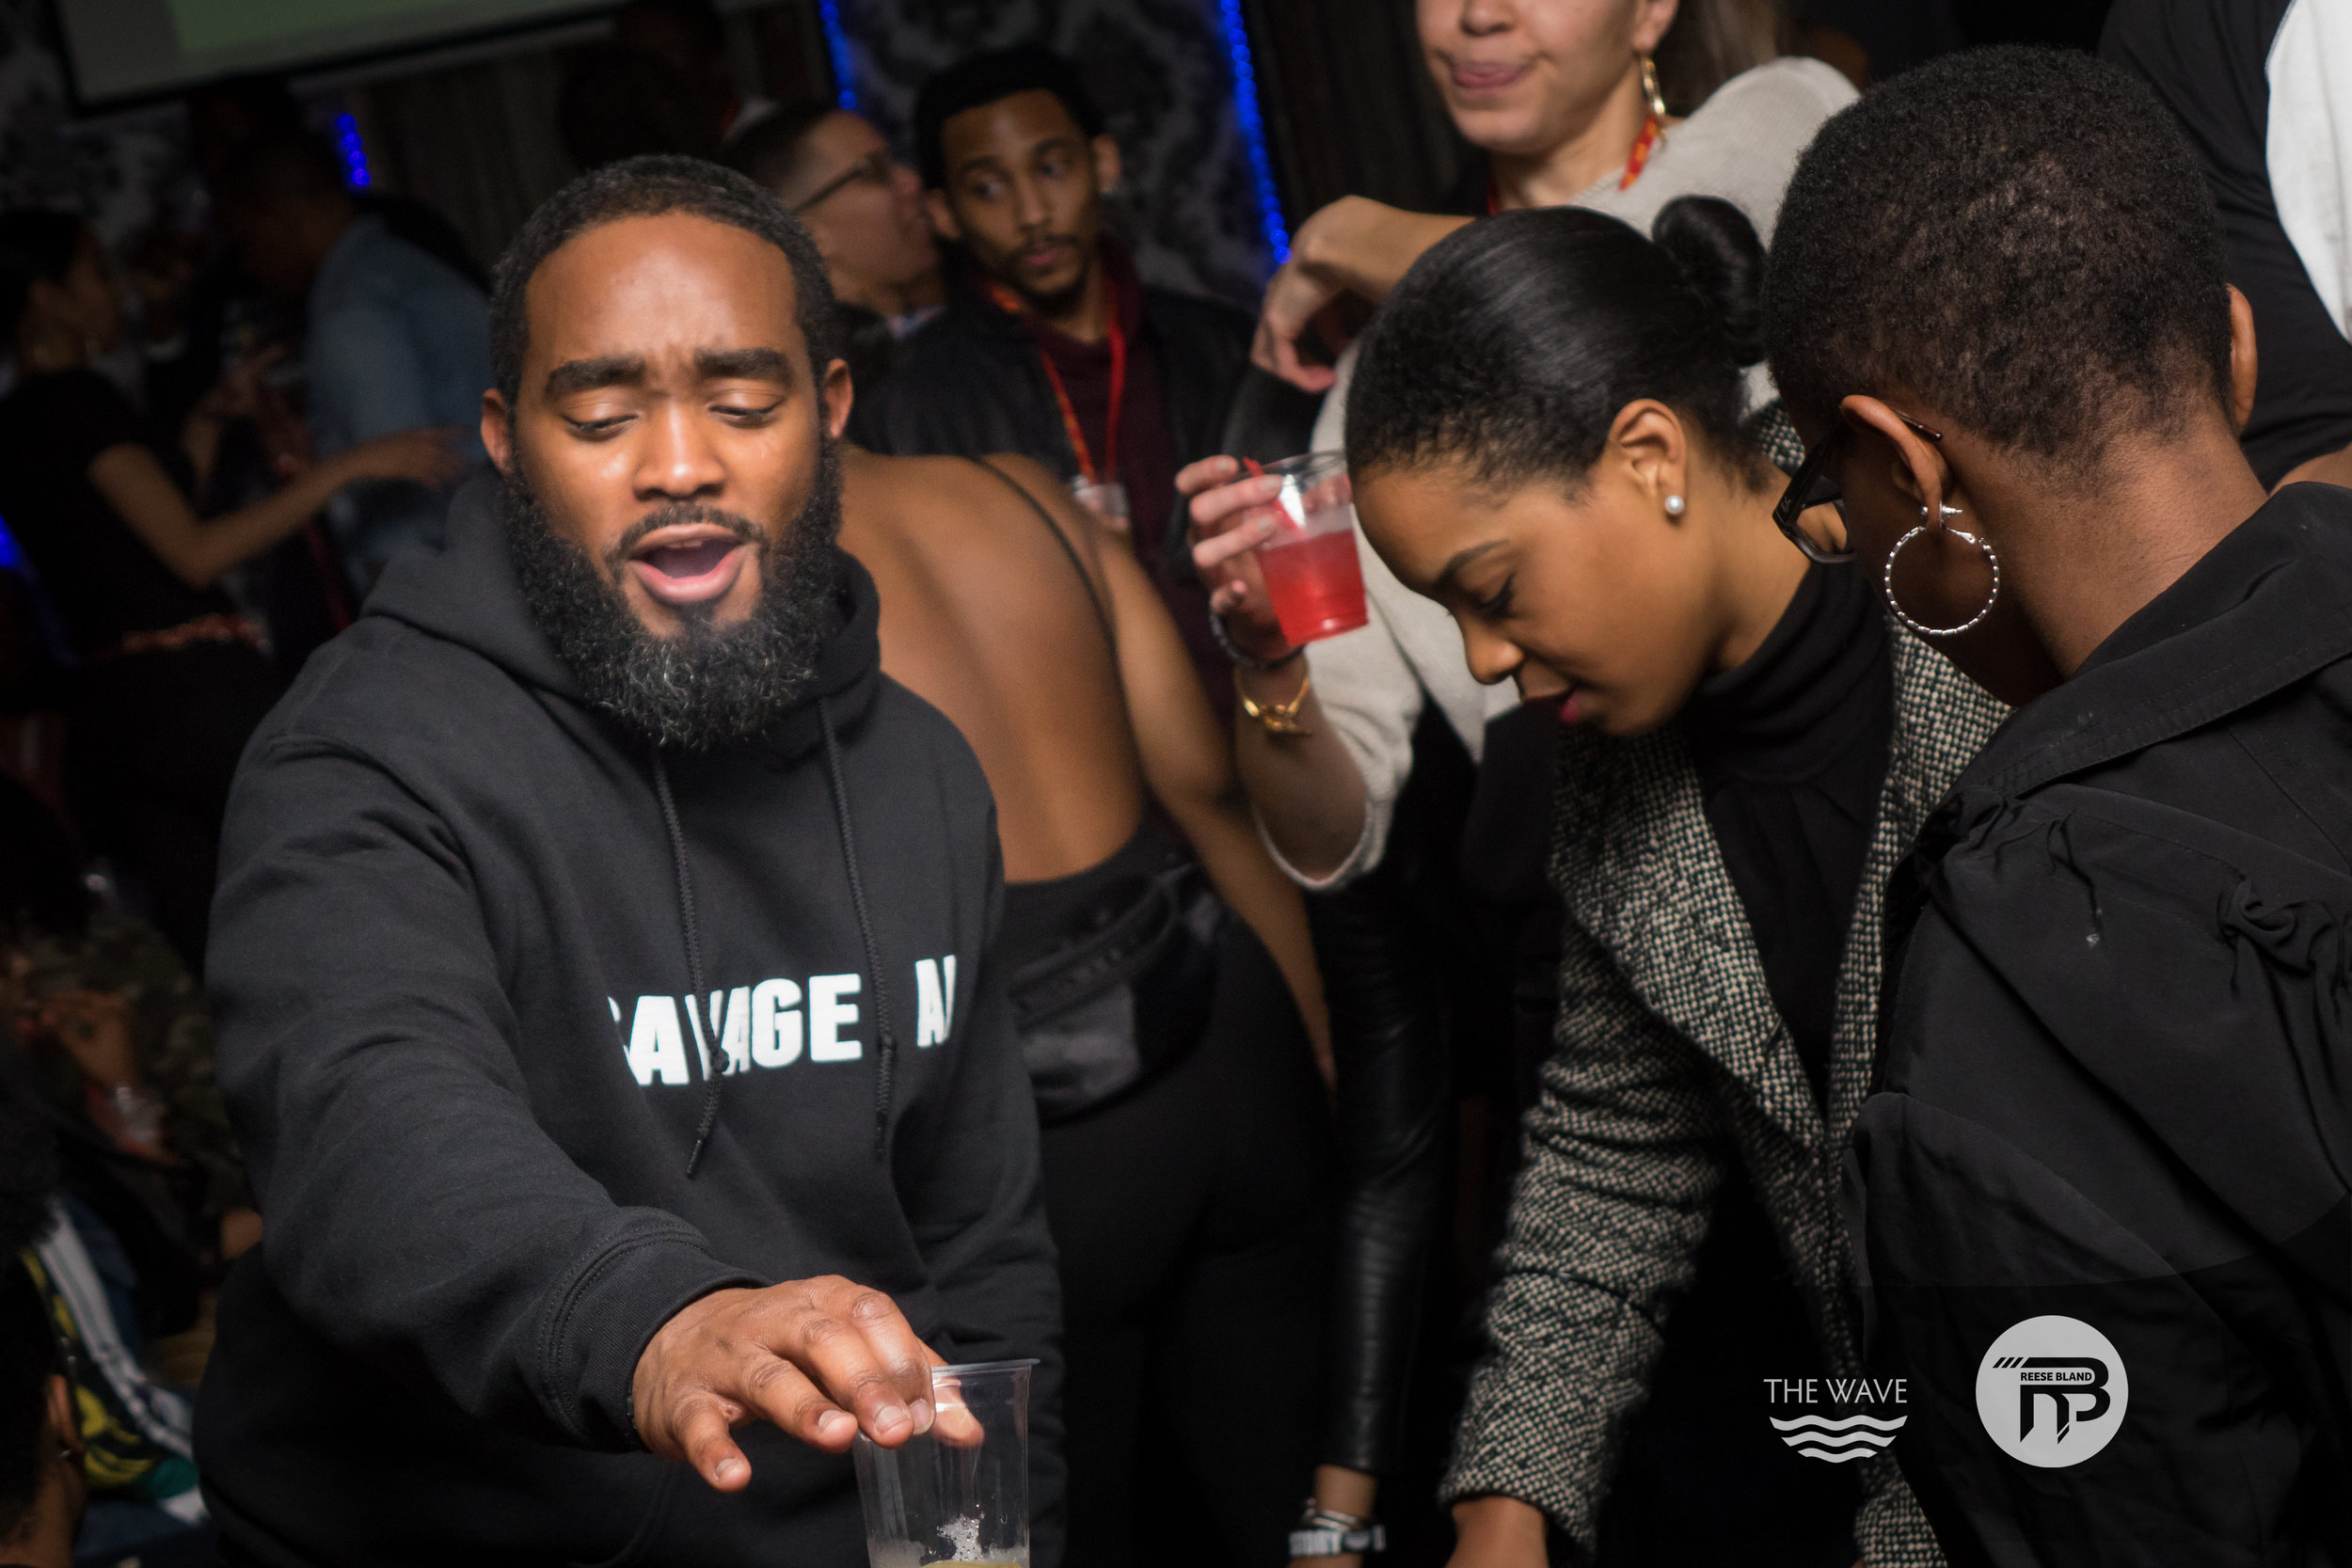 WaveDC-BlackBarCrawl-2-2018-06629.jpg